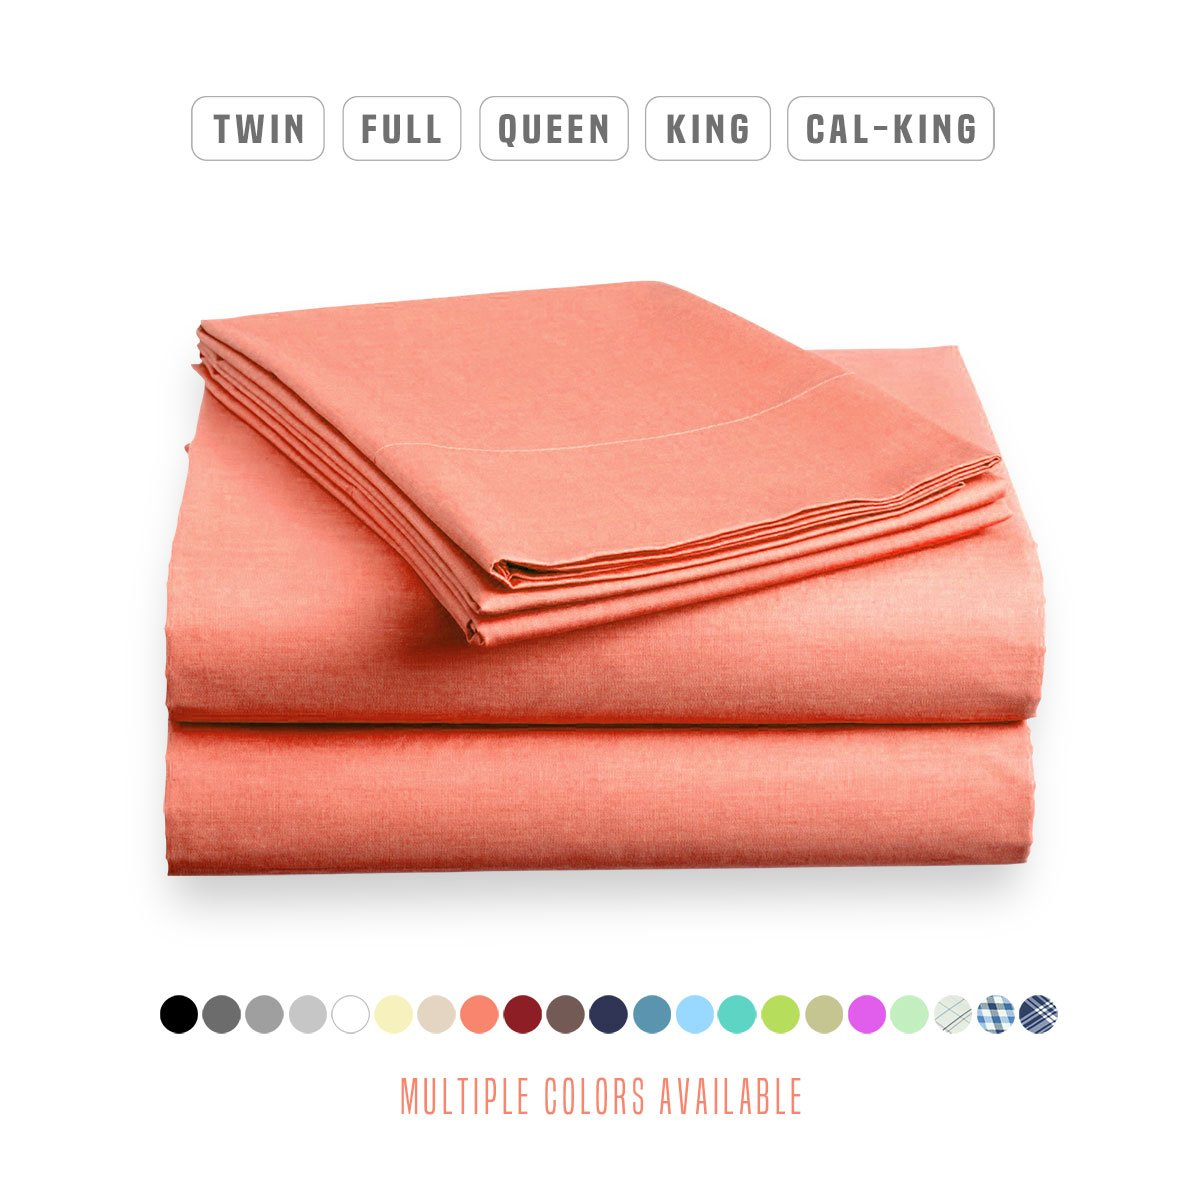 Luxe Bedding Bed Sheet Set full Peach